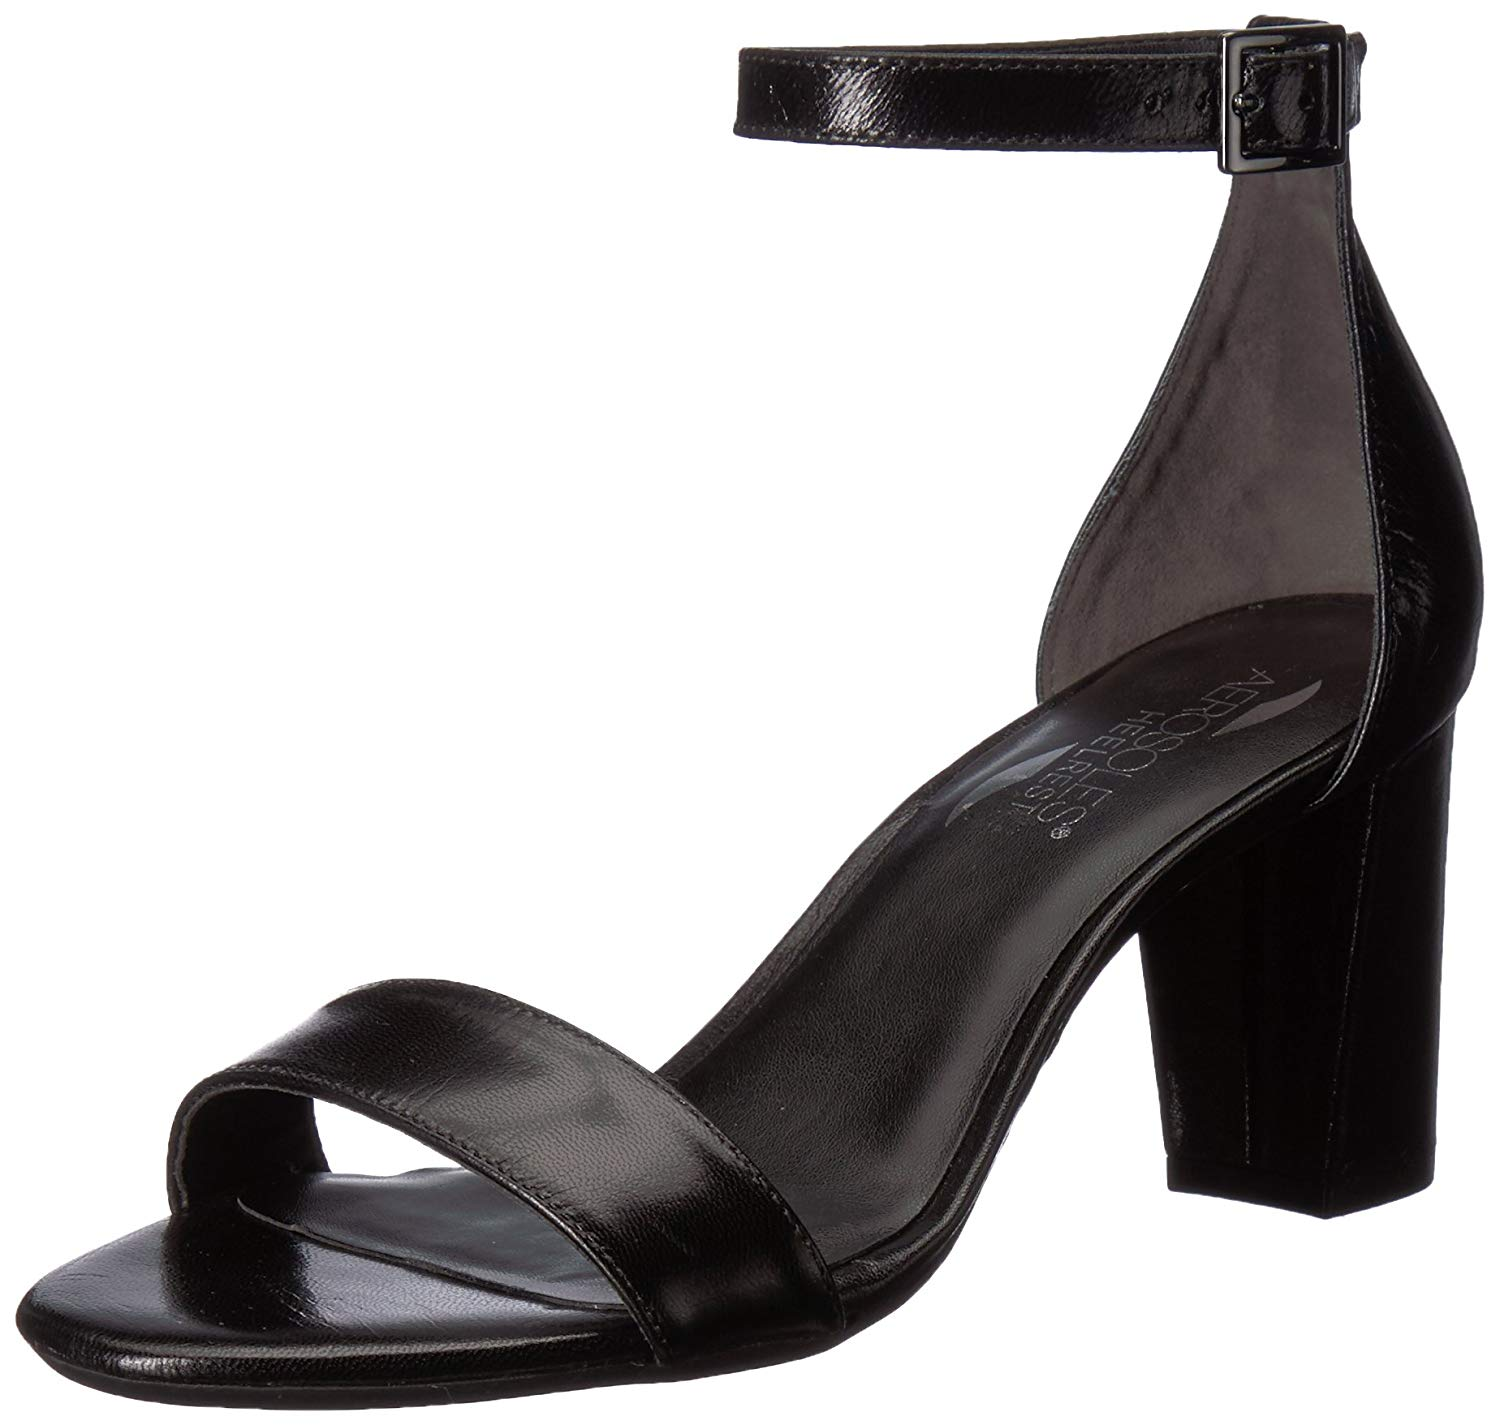 c8e84620f520d Details about Aerosoles Bird of Paradise Black Leather Two Piece Wrapped  Heel Ankle Buckle